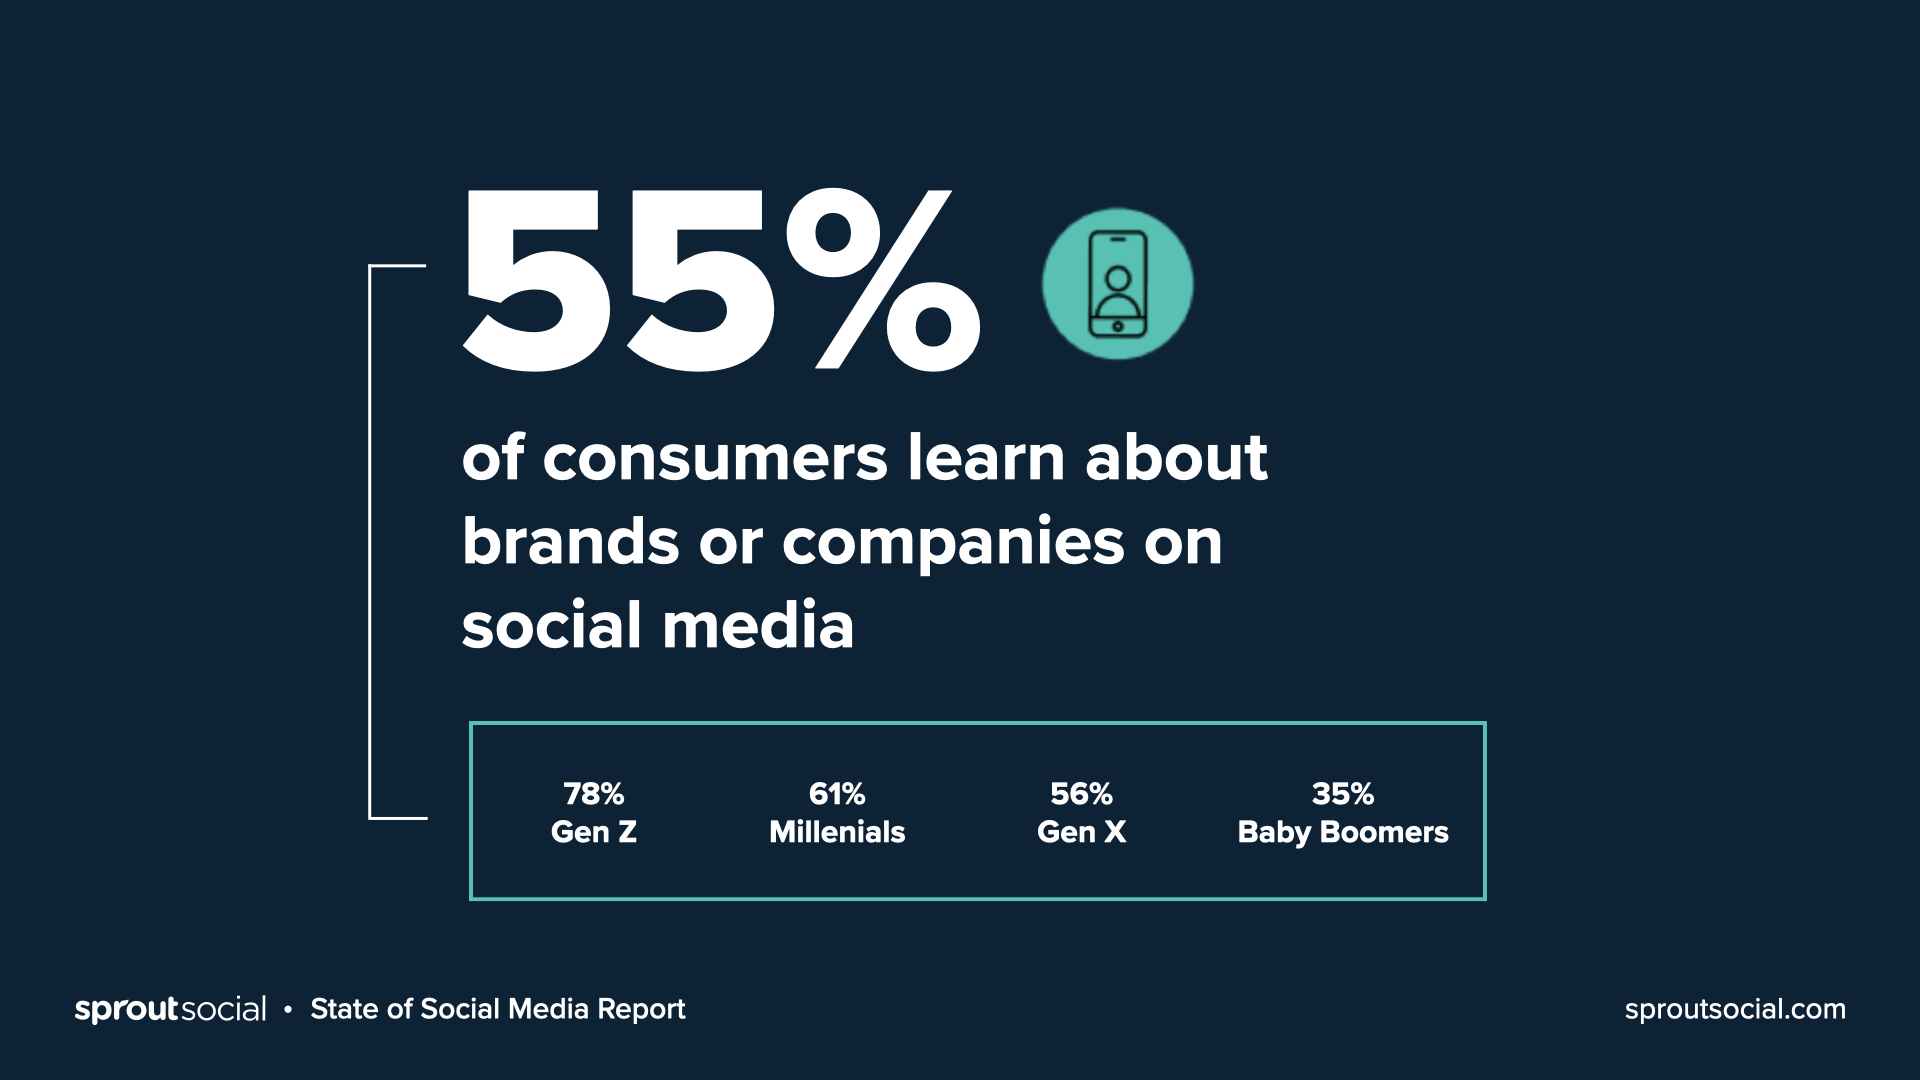 55% of consumers learn about brands or companies on social media